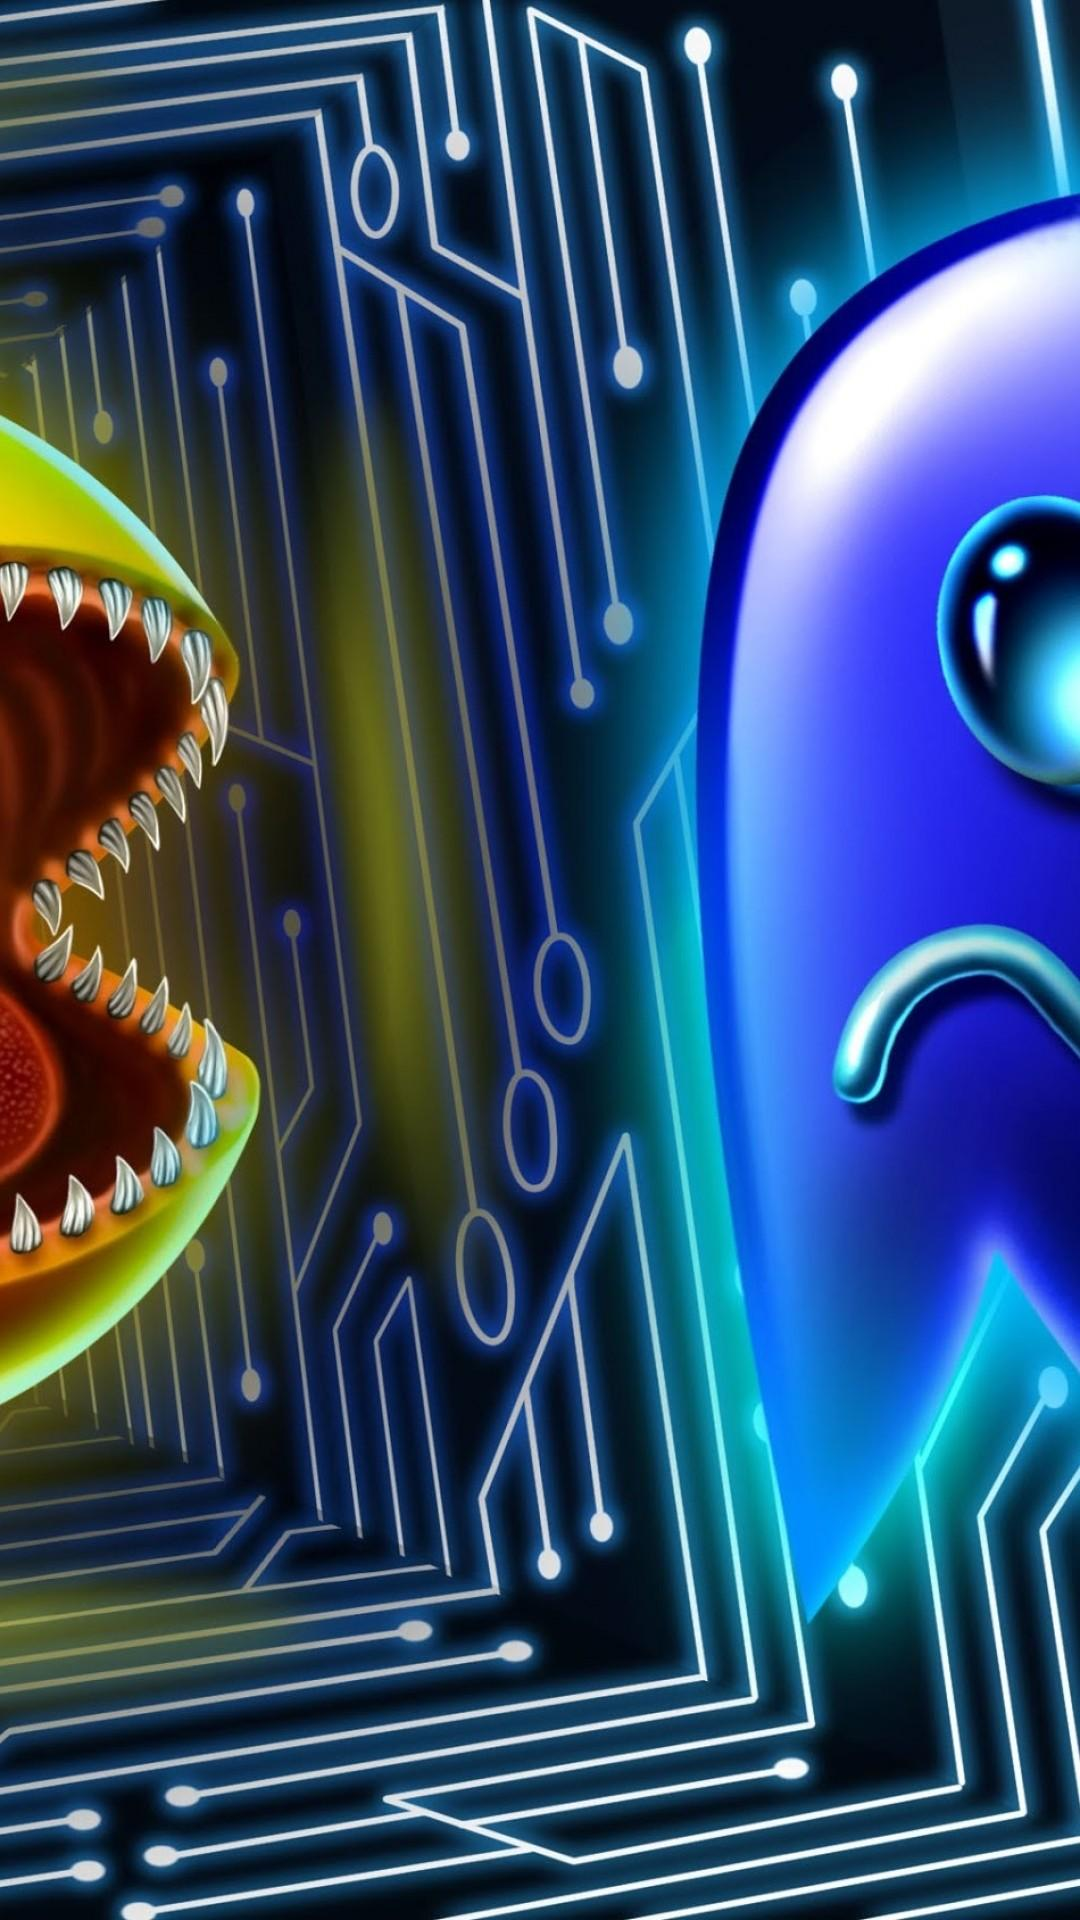 Nice Pacman Iphone Wallpaper (45+), Find HD Wallpapers For Free